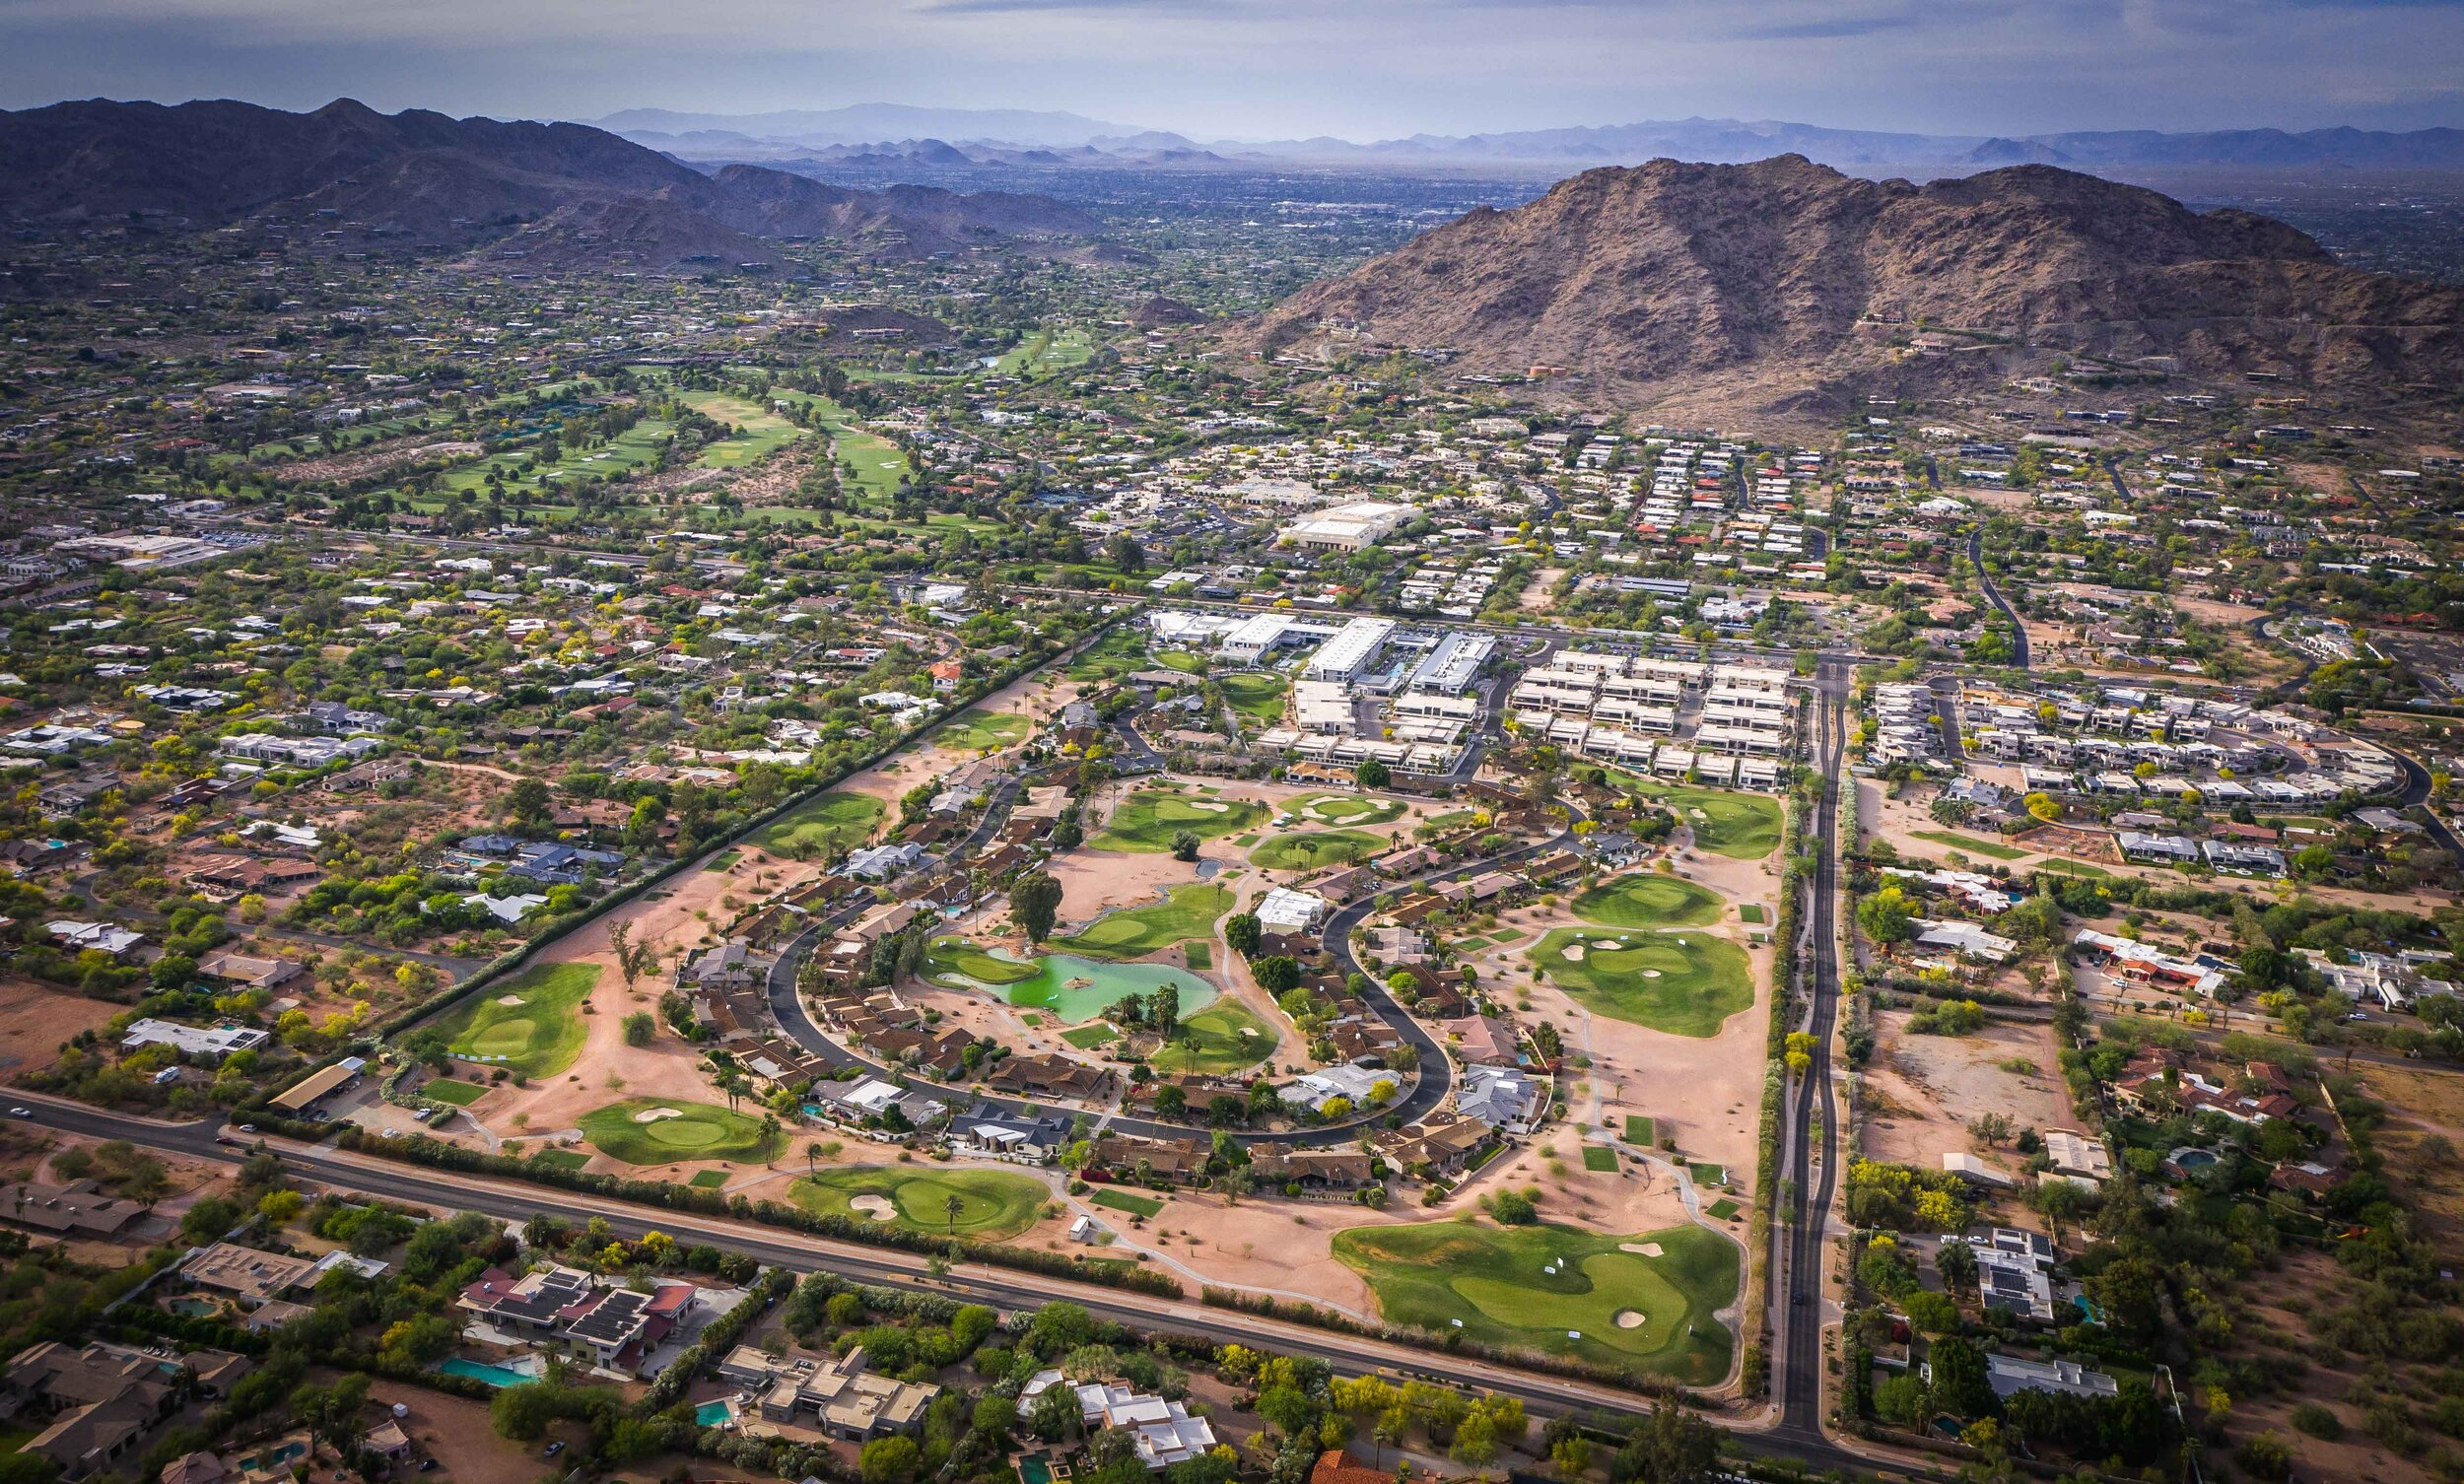 Mountain Shadows resort is cleverly situated in the shadows of Camelback Mountain with 18 fun and glorious par 3's awaiting golfers.